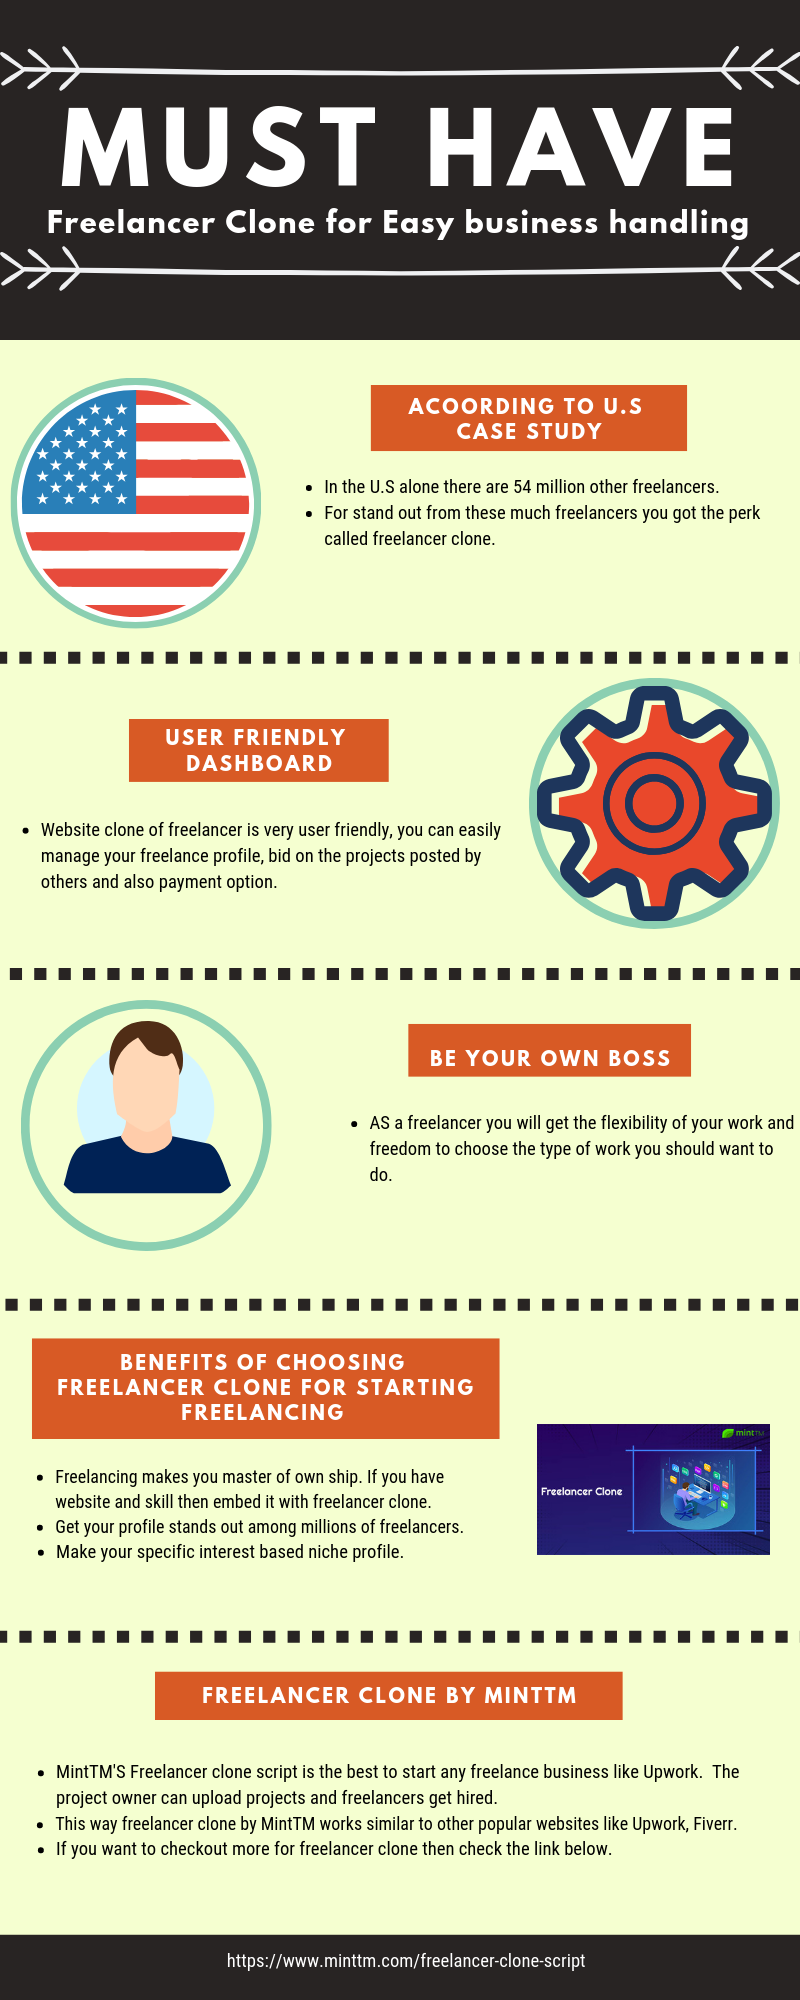 Freelancer Clone: How Freelancers Can Build their Advantage - Infographic